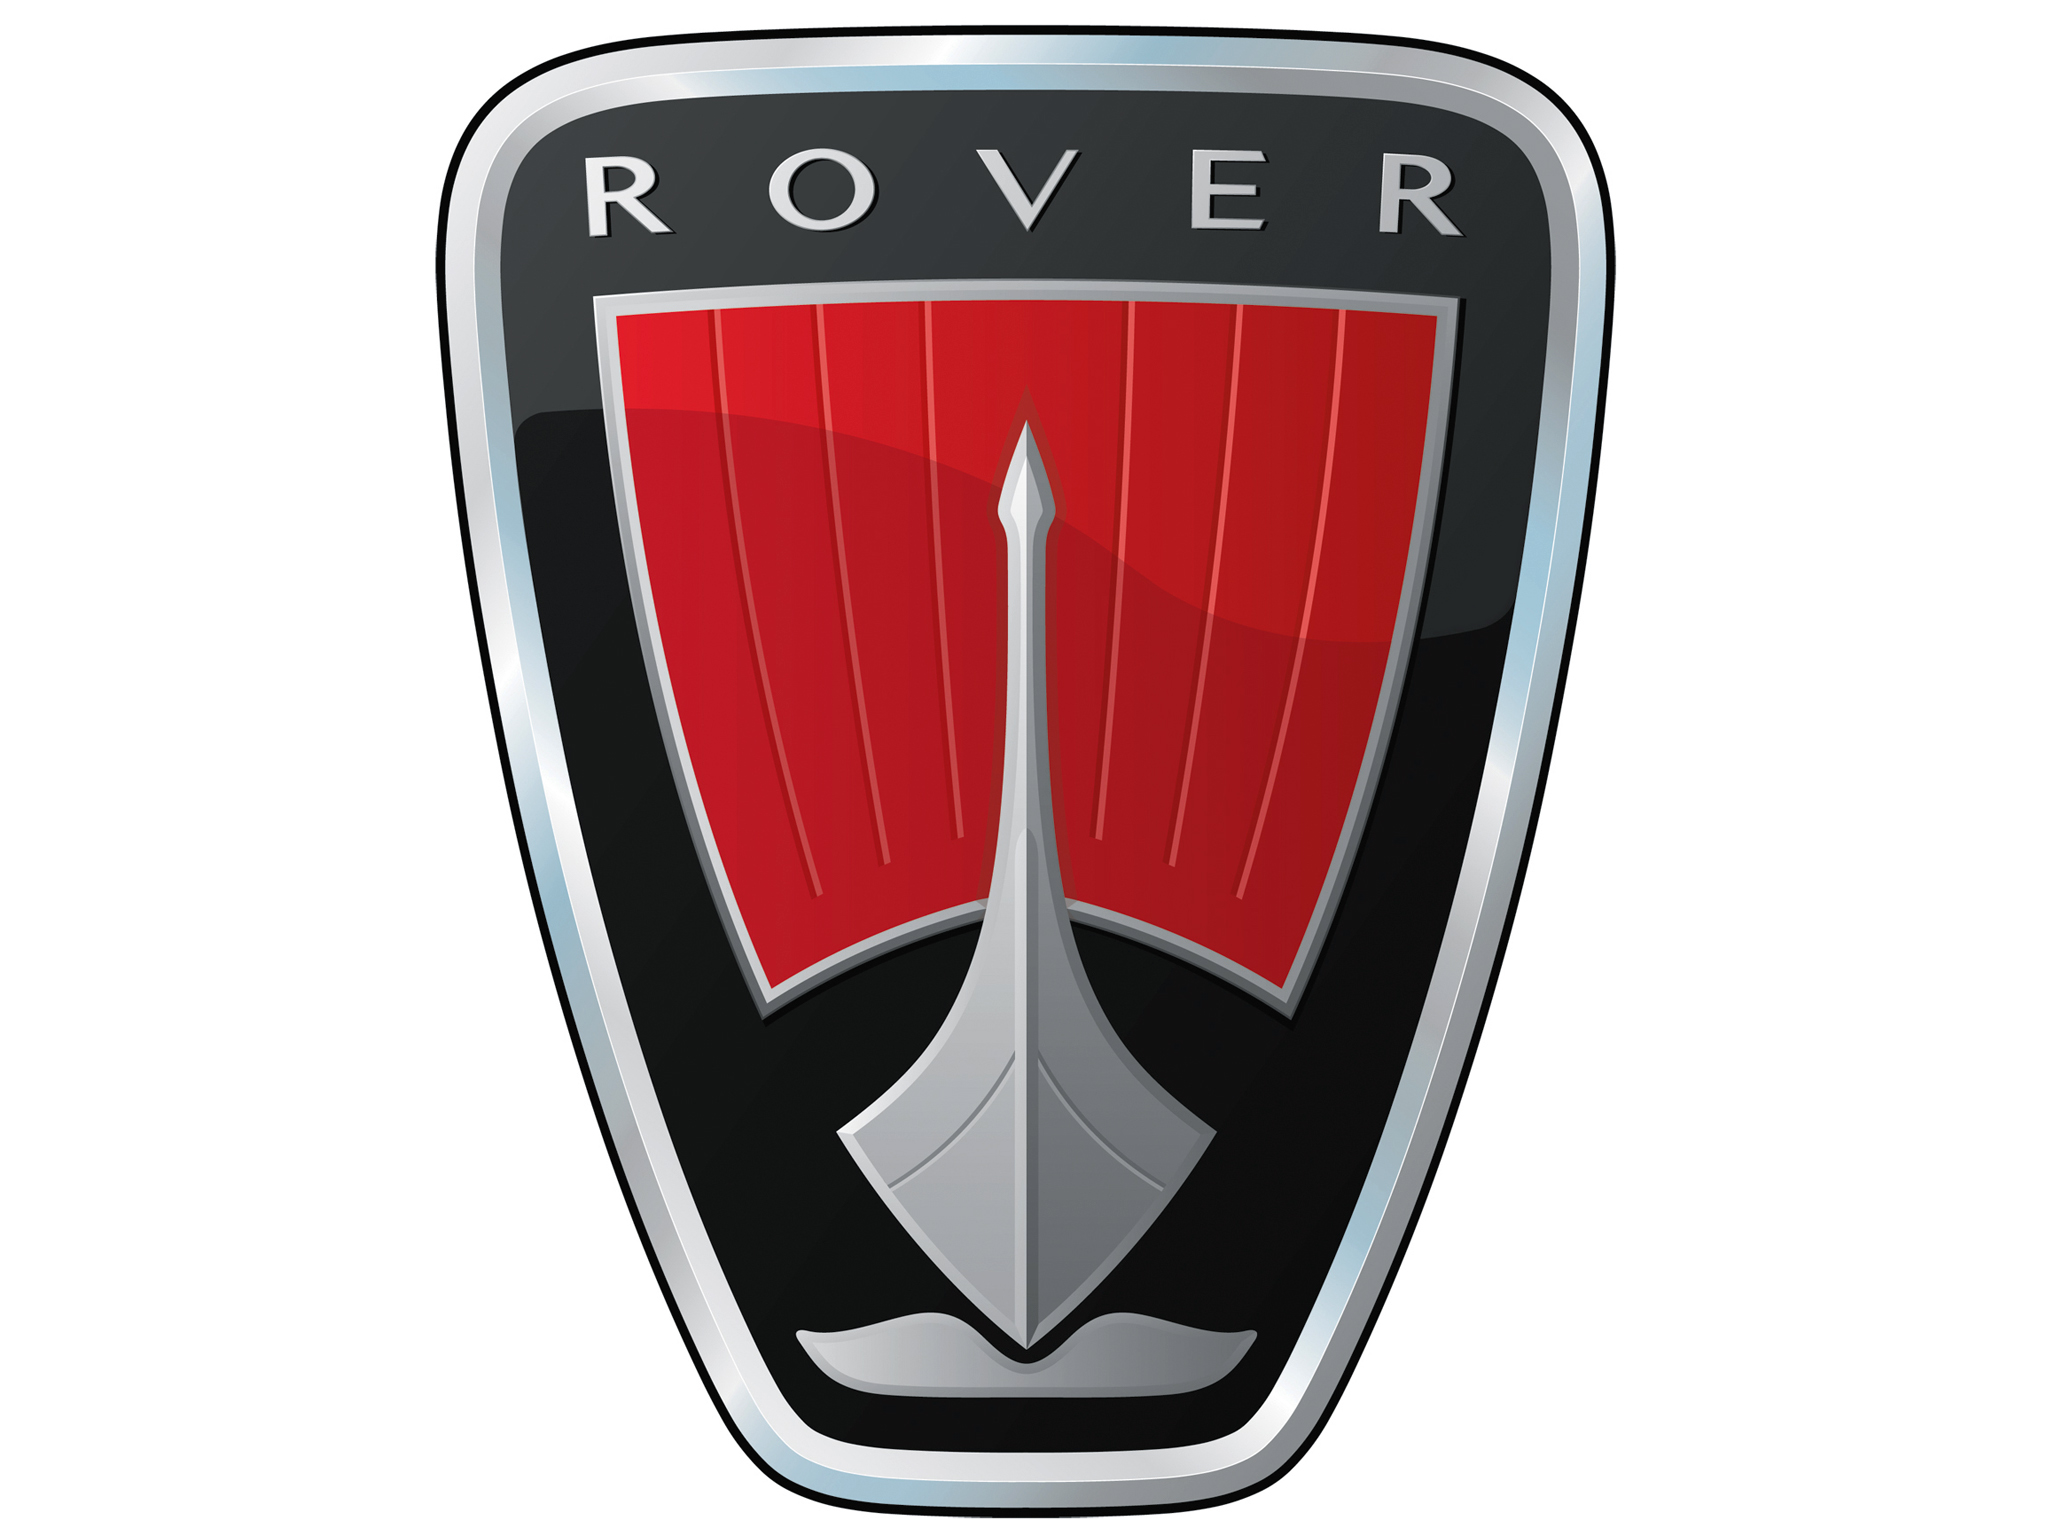 rover logo rover car symbol meaning and history car brand. Black Bedroom Furniture Sets. Home Design Ideas